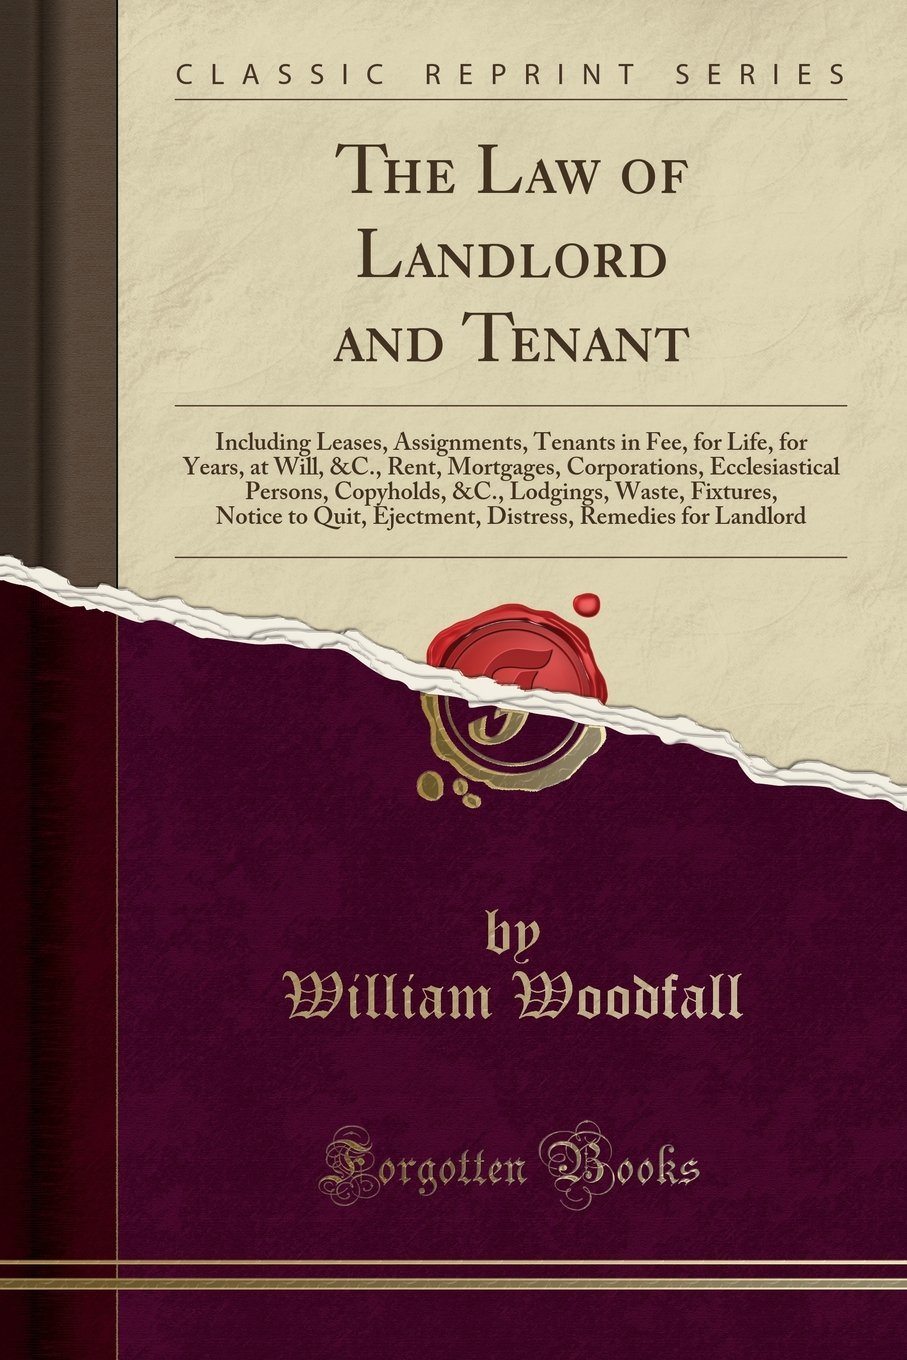 Download The Law of Landlord and Tenant: Including Leases, Assignments, Tenants in Fee, for Life, for Years, at Will, C, Rent, Mortgages, Corporations. Notice to Quit, Ejectment, Distress, Remedi PDF